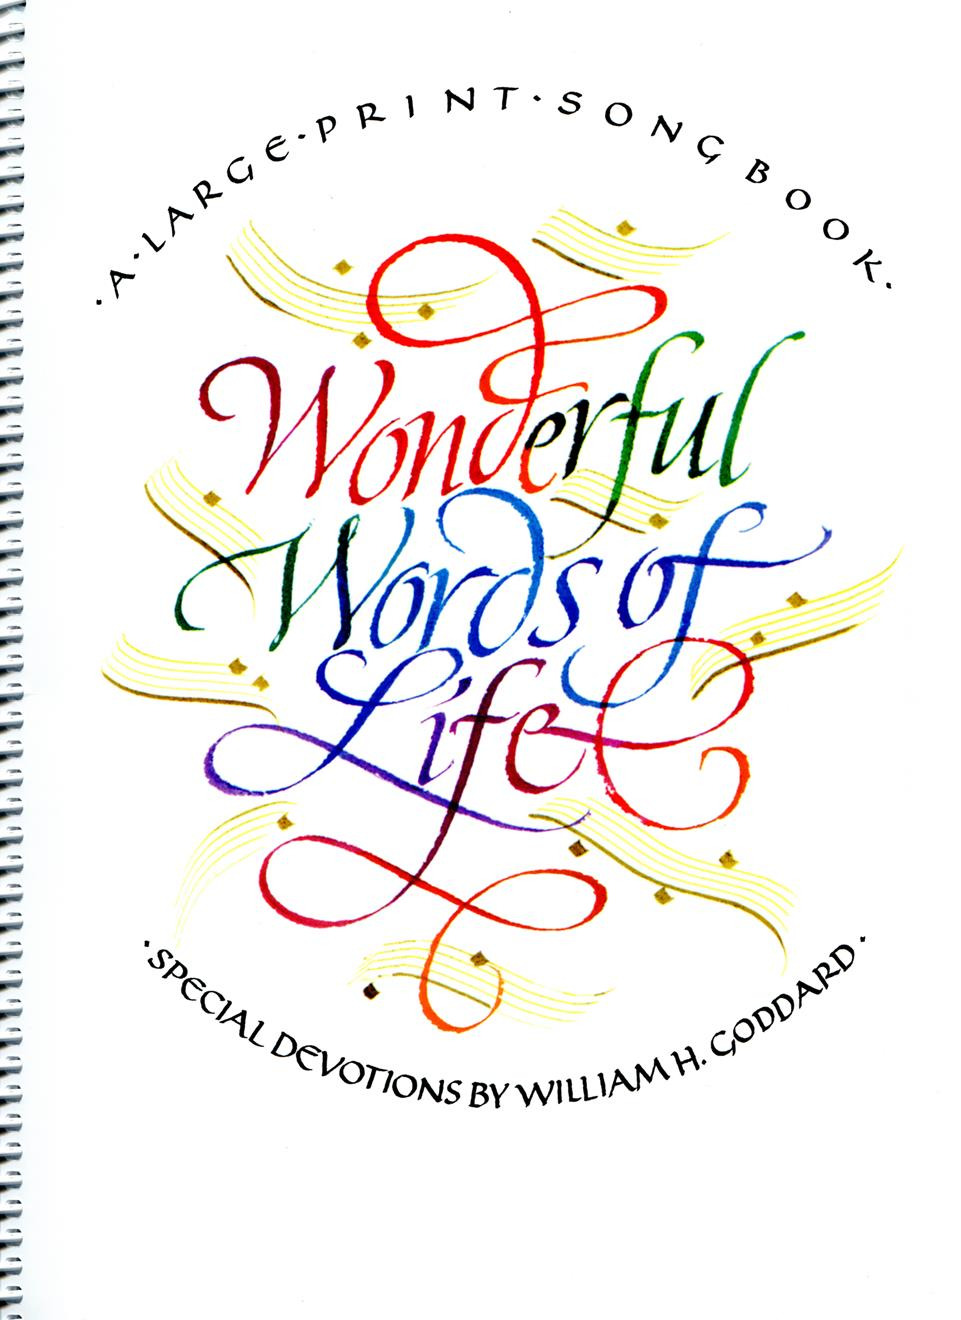 Wonderful Words of Life - Spiral Cover Image